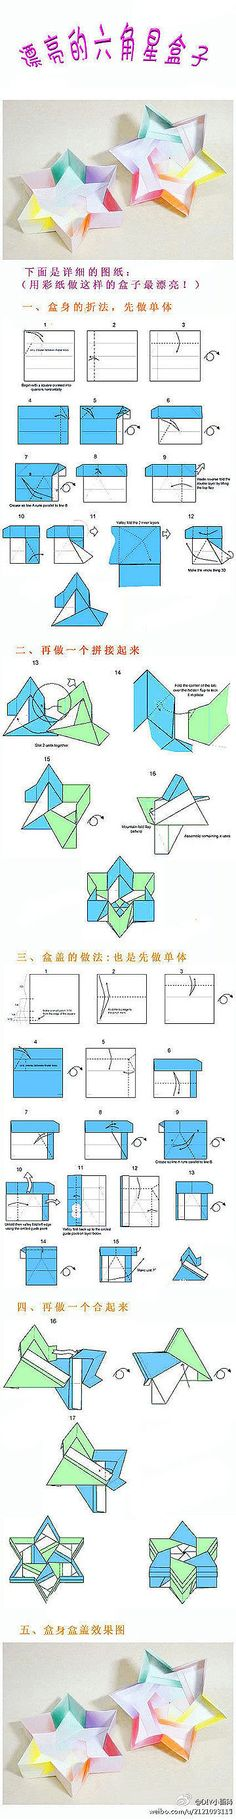 finally found it! the directions to this origami modular star box :D